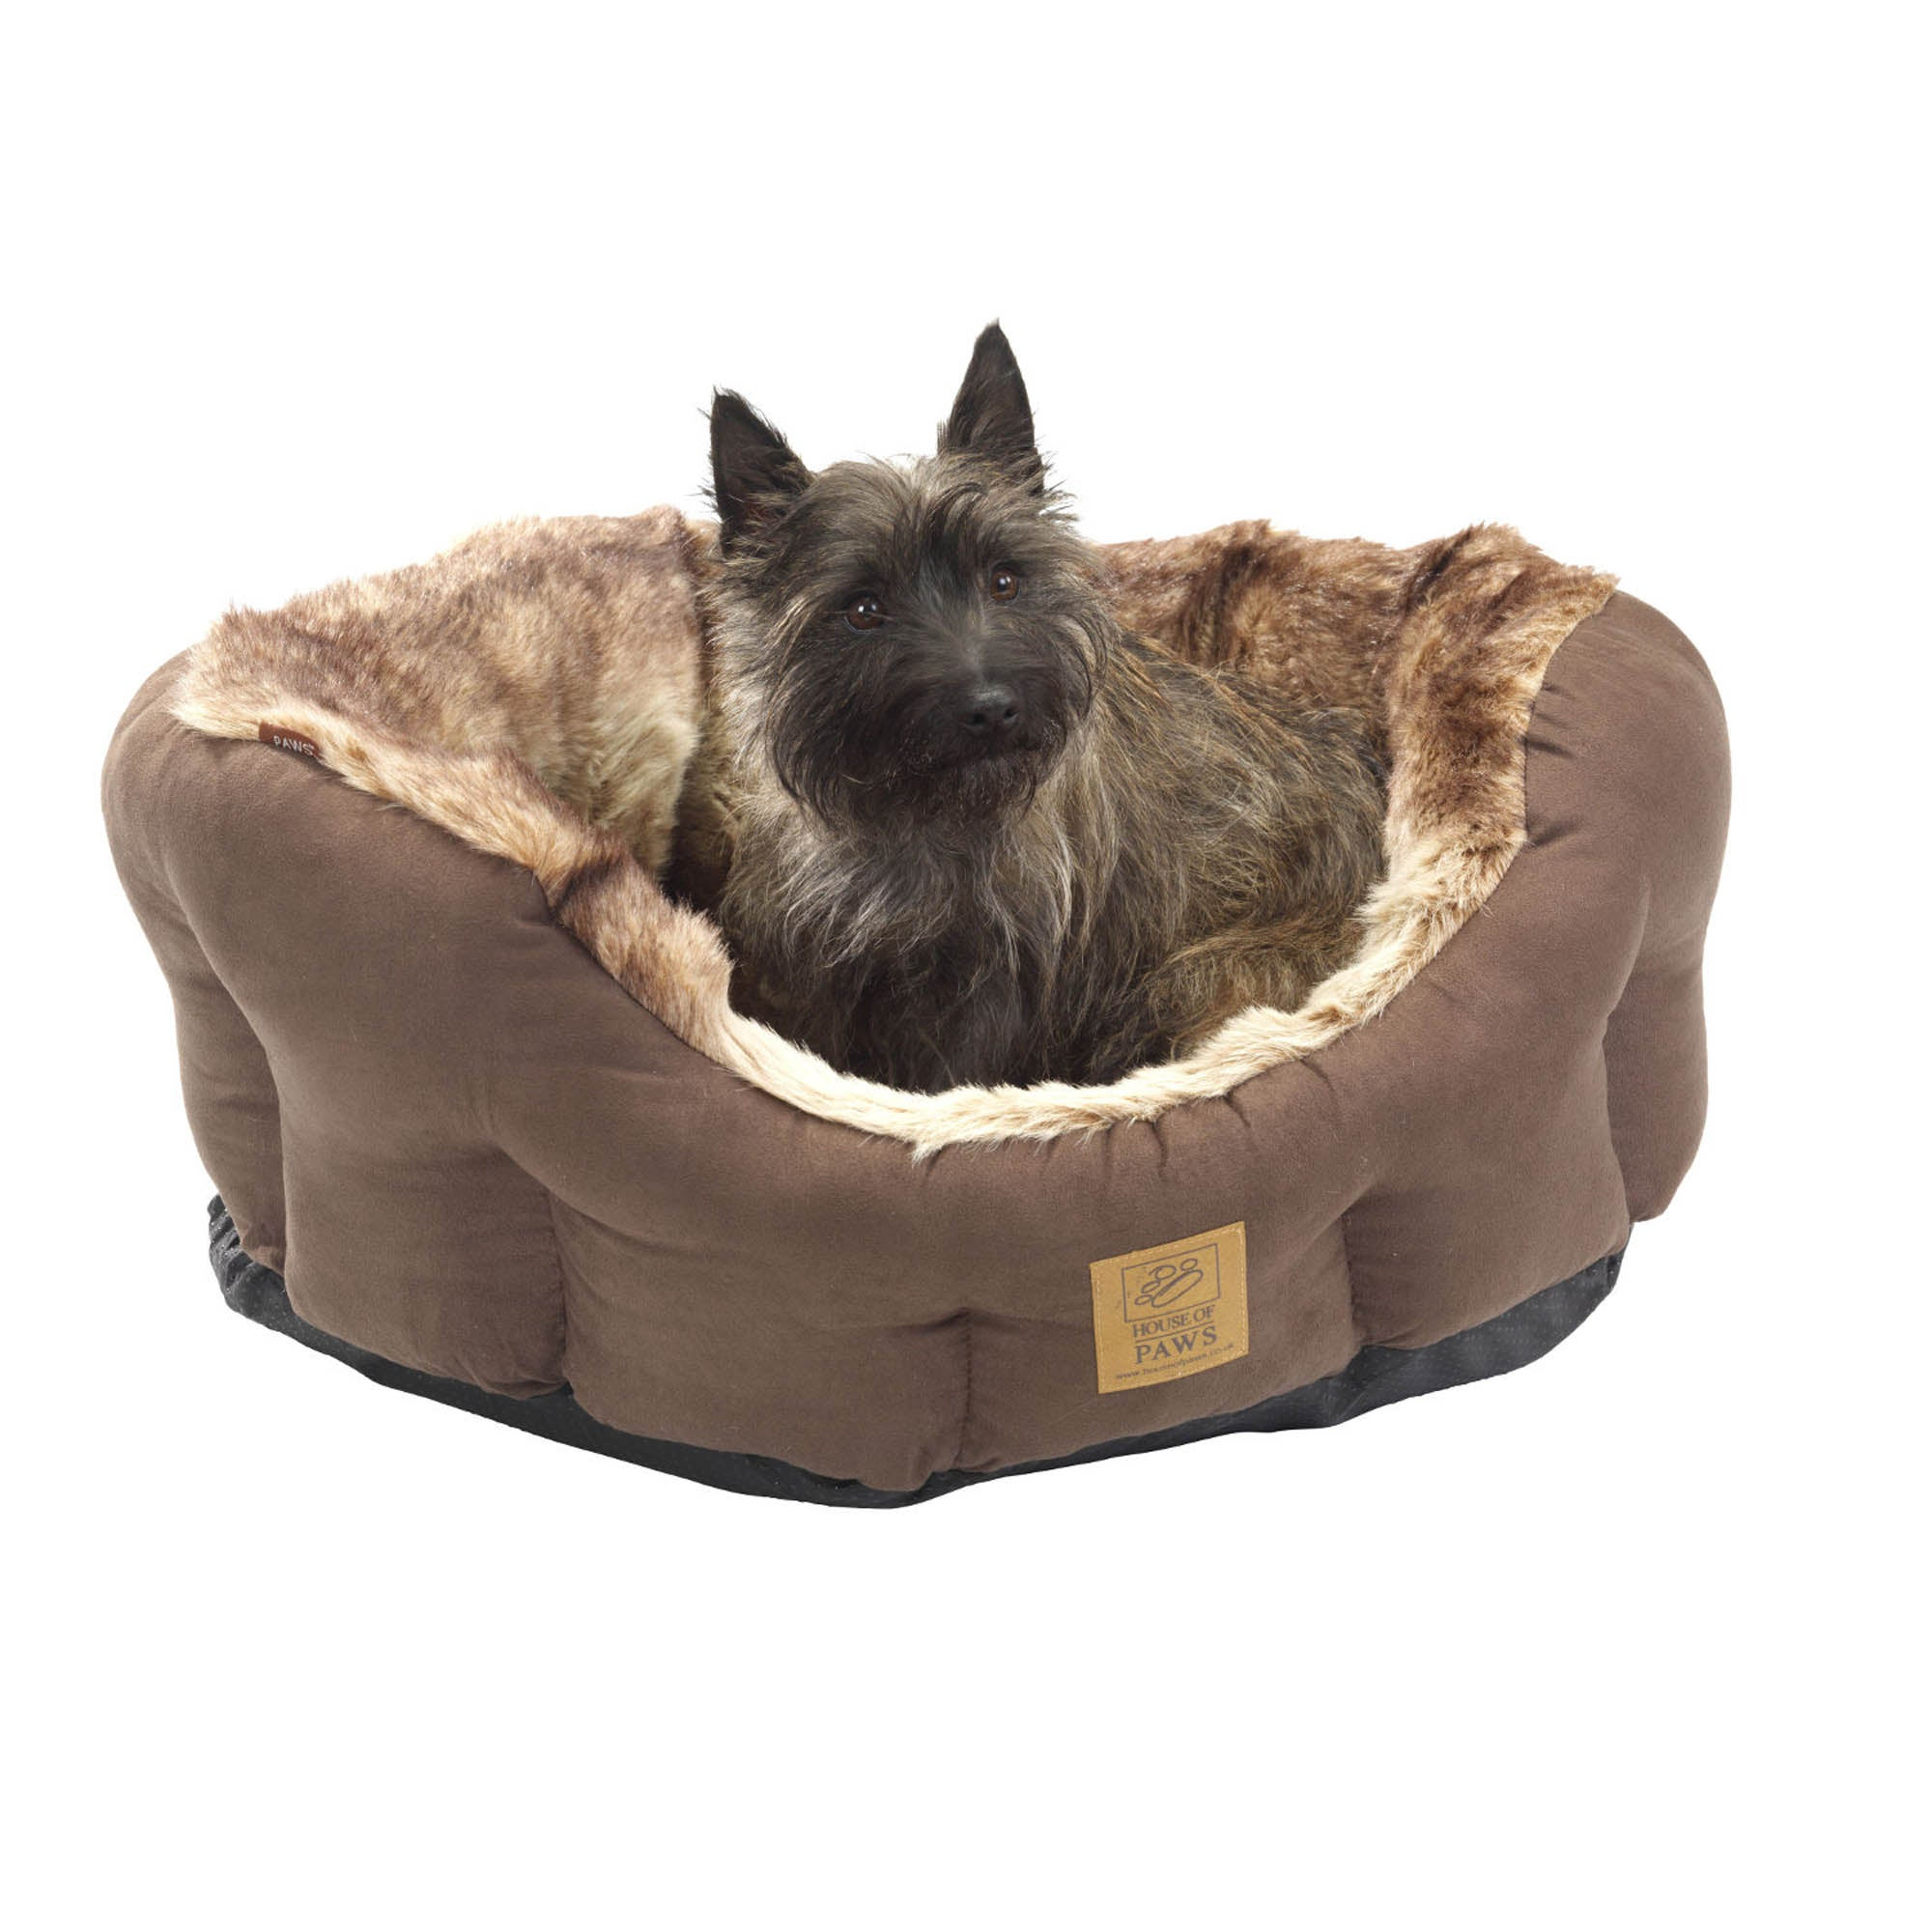 House of Paws Arctic Fox Dog Bed Sable (Brown)